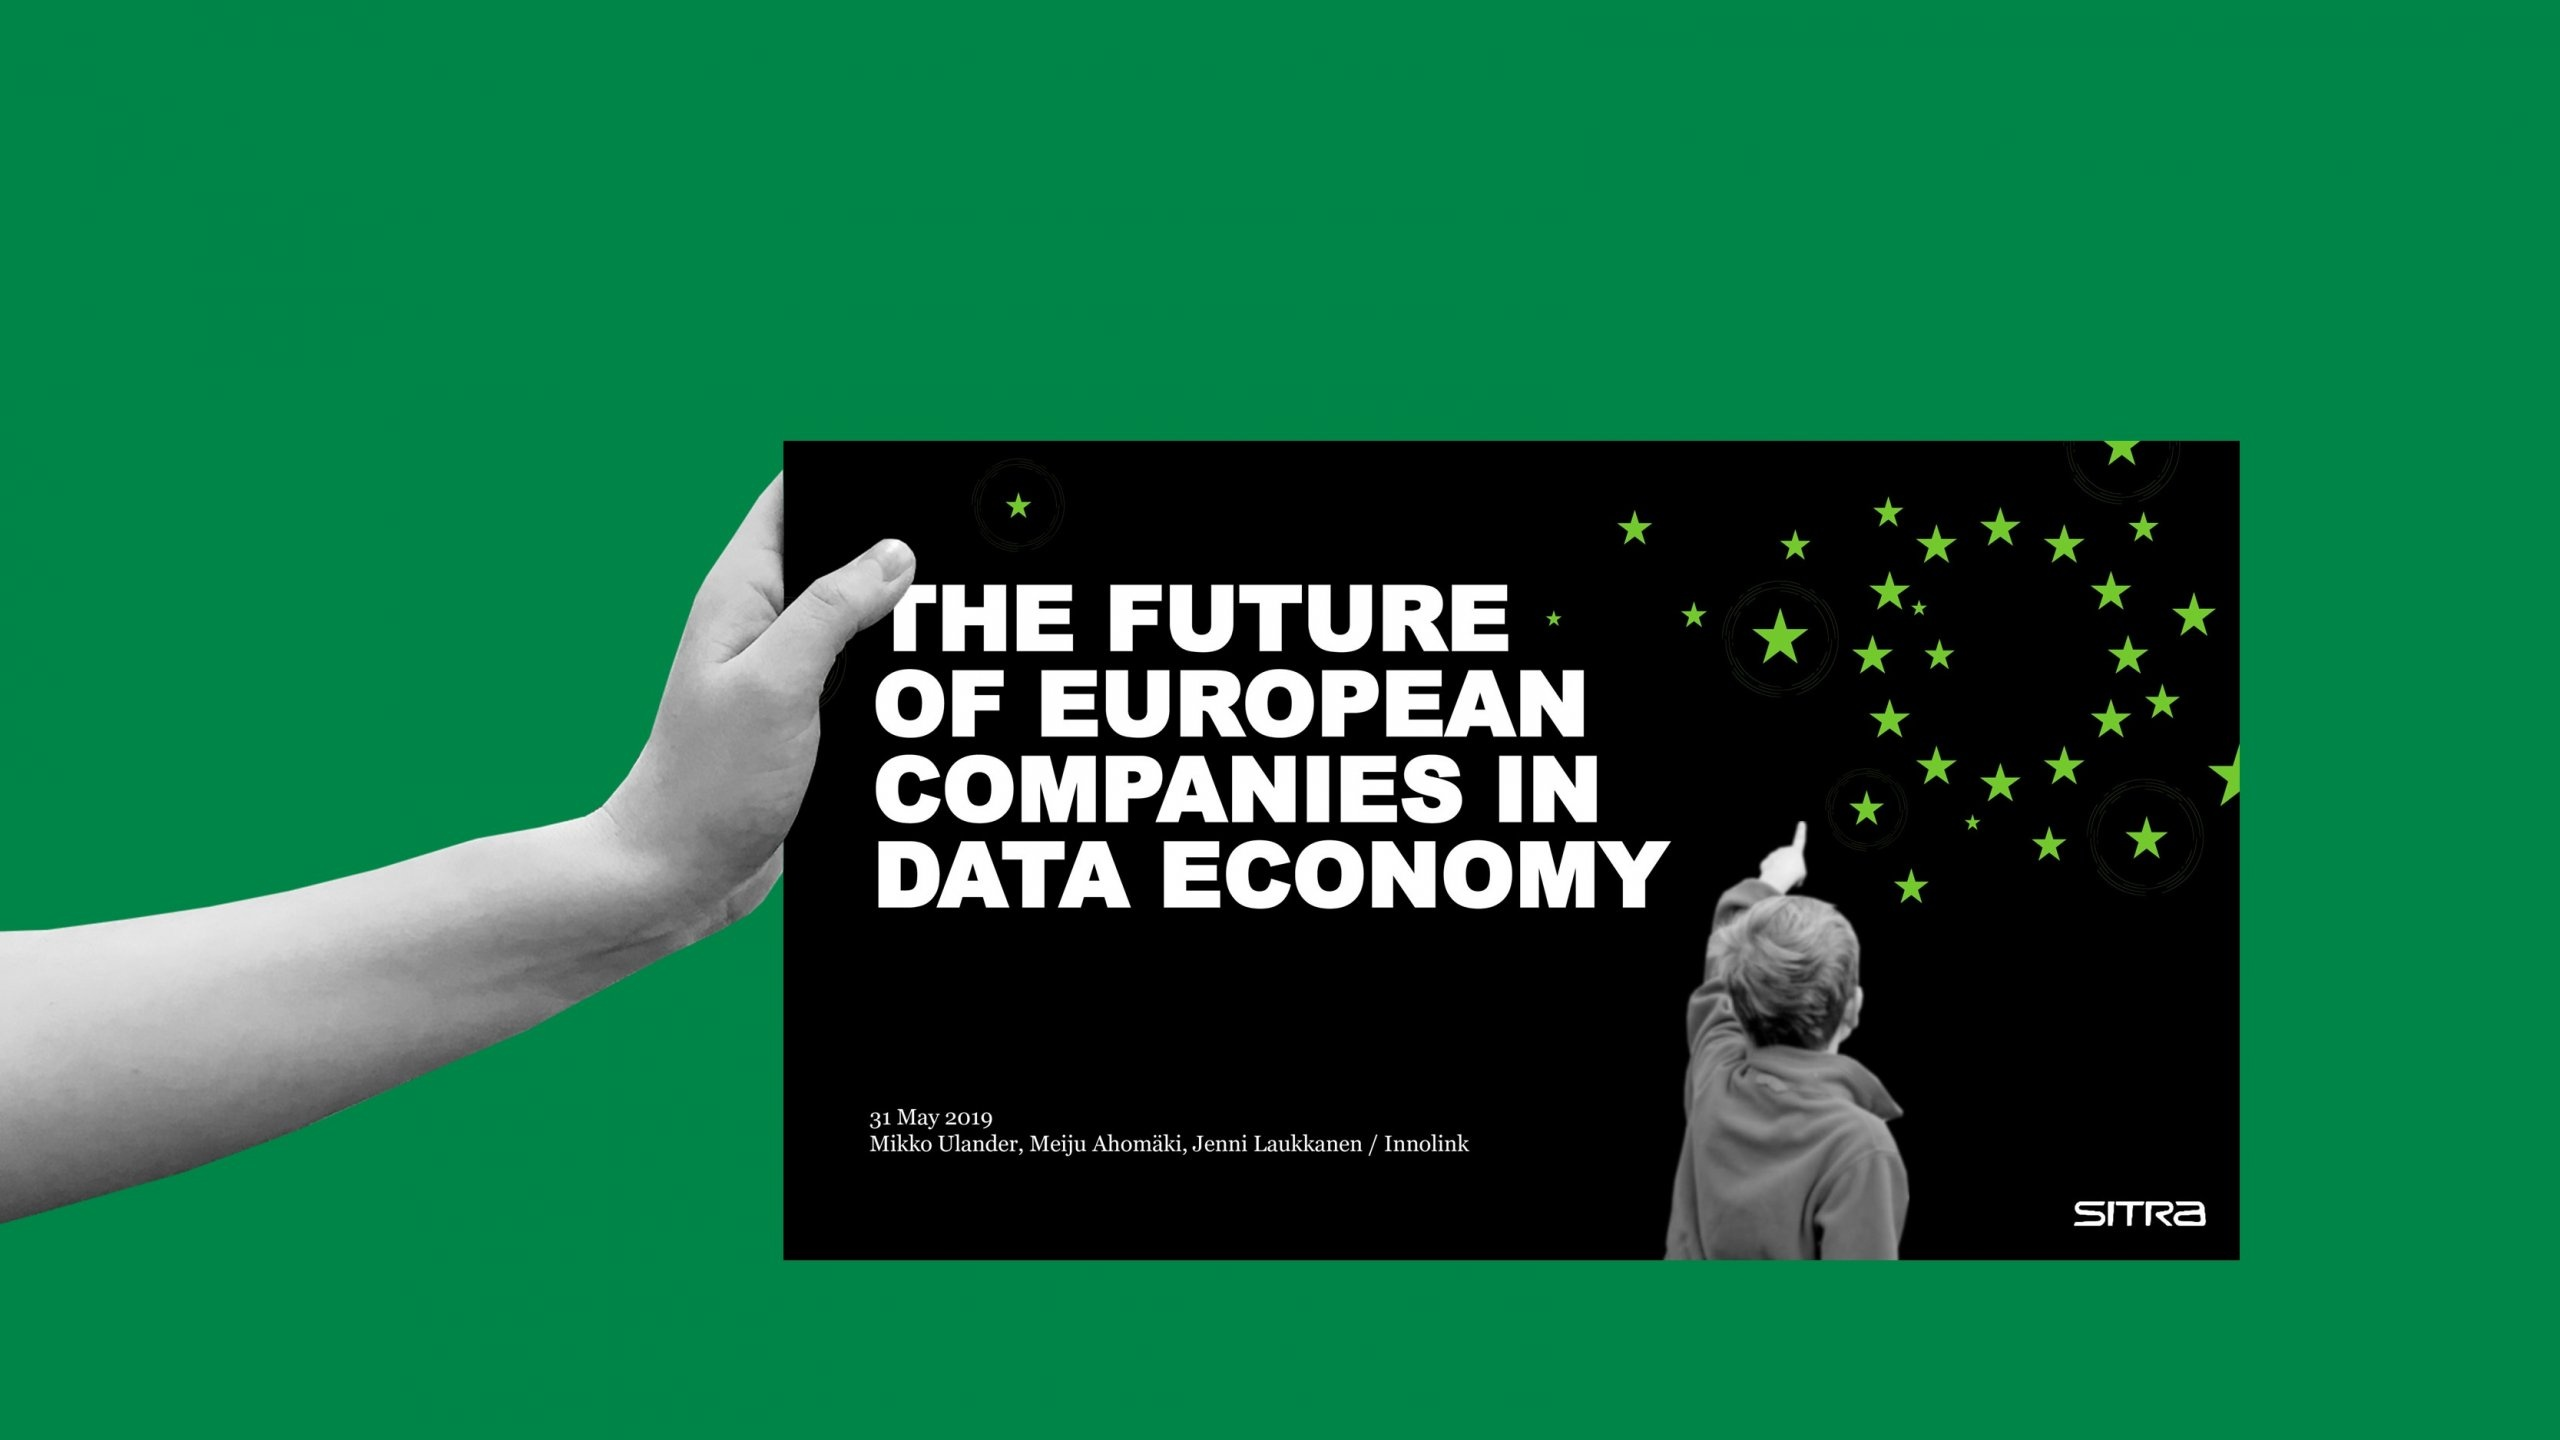 The future of European companies in data economy